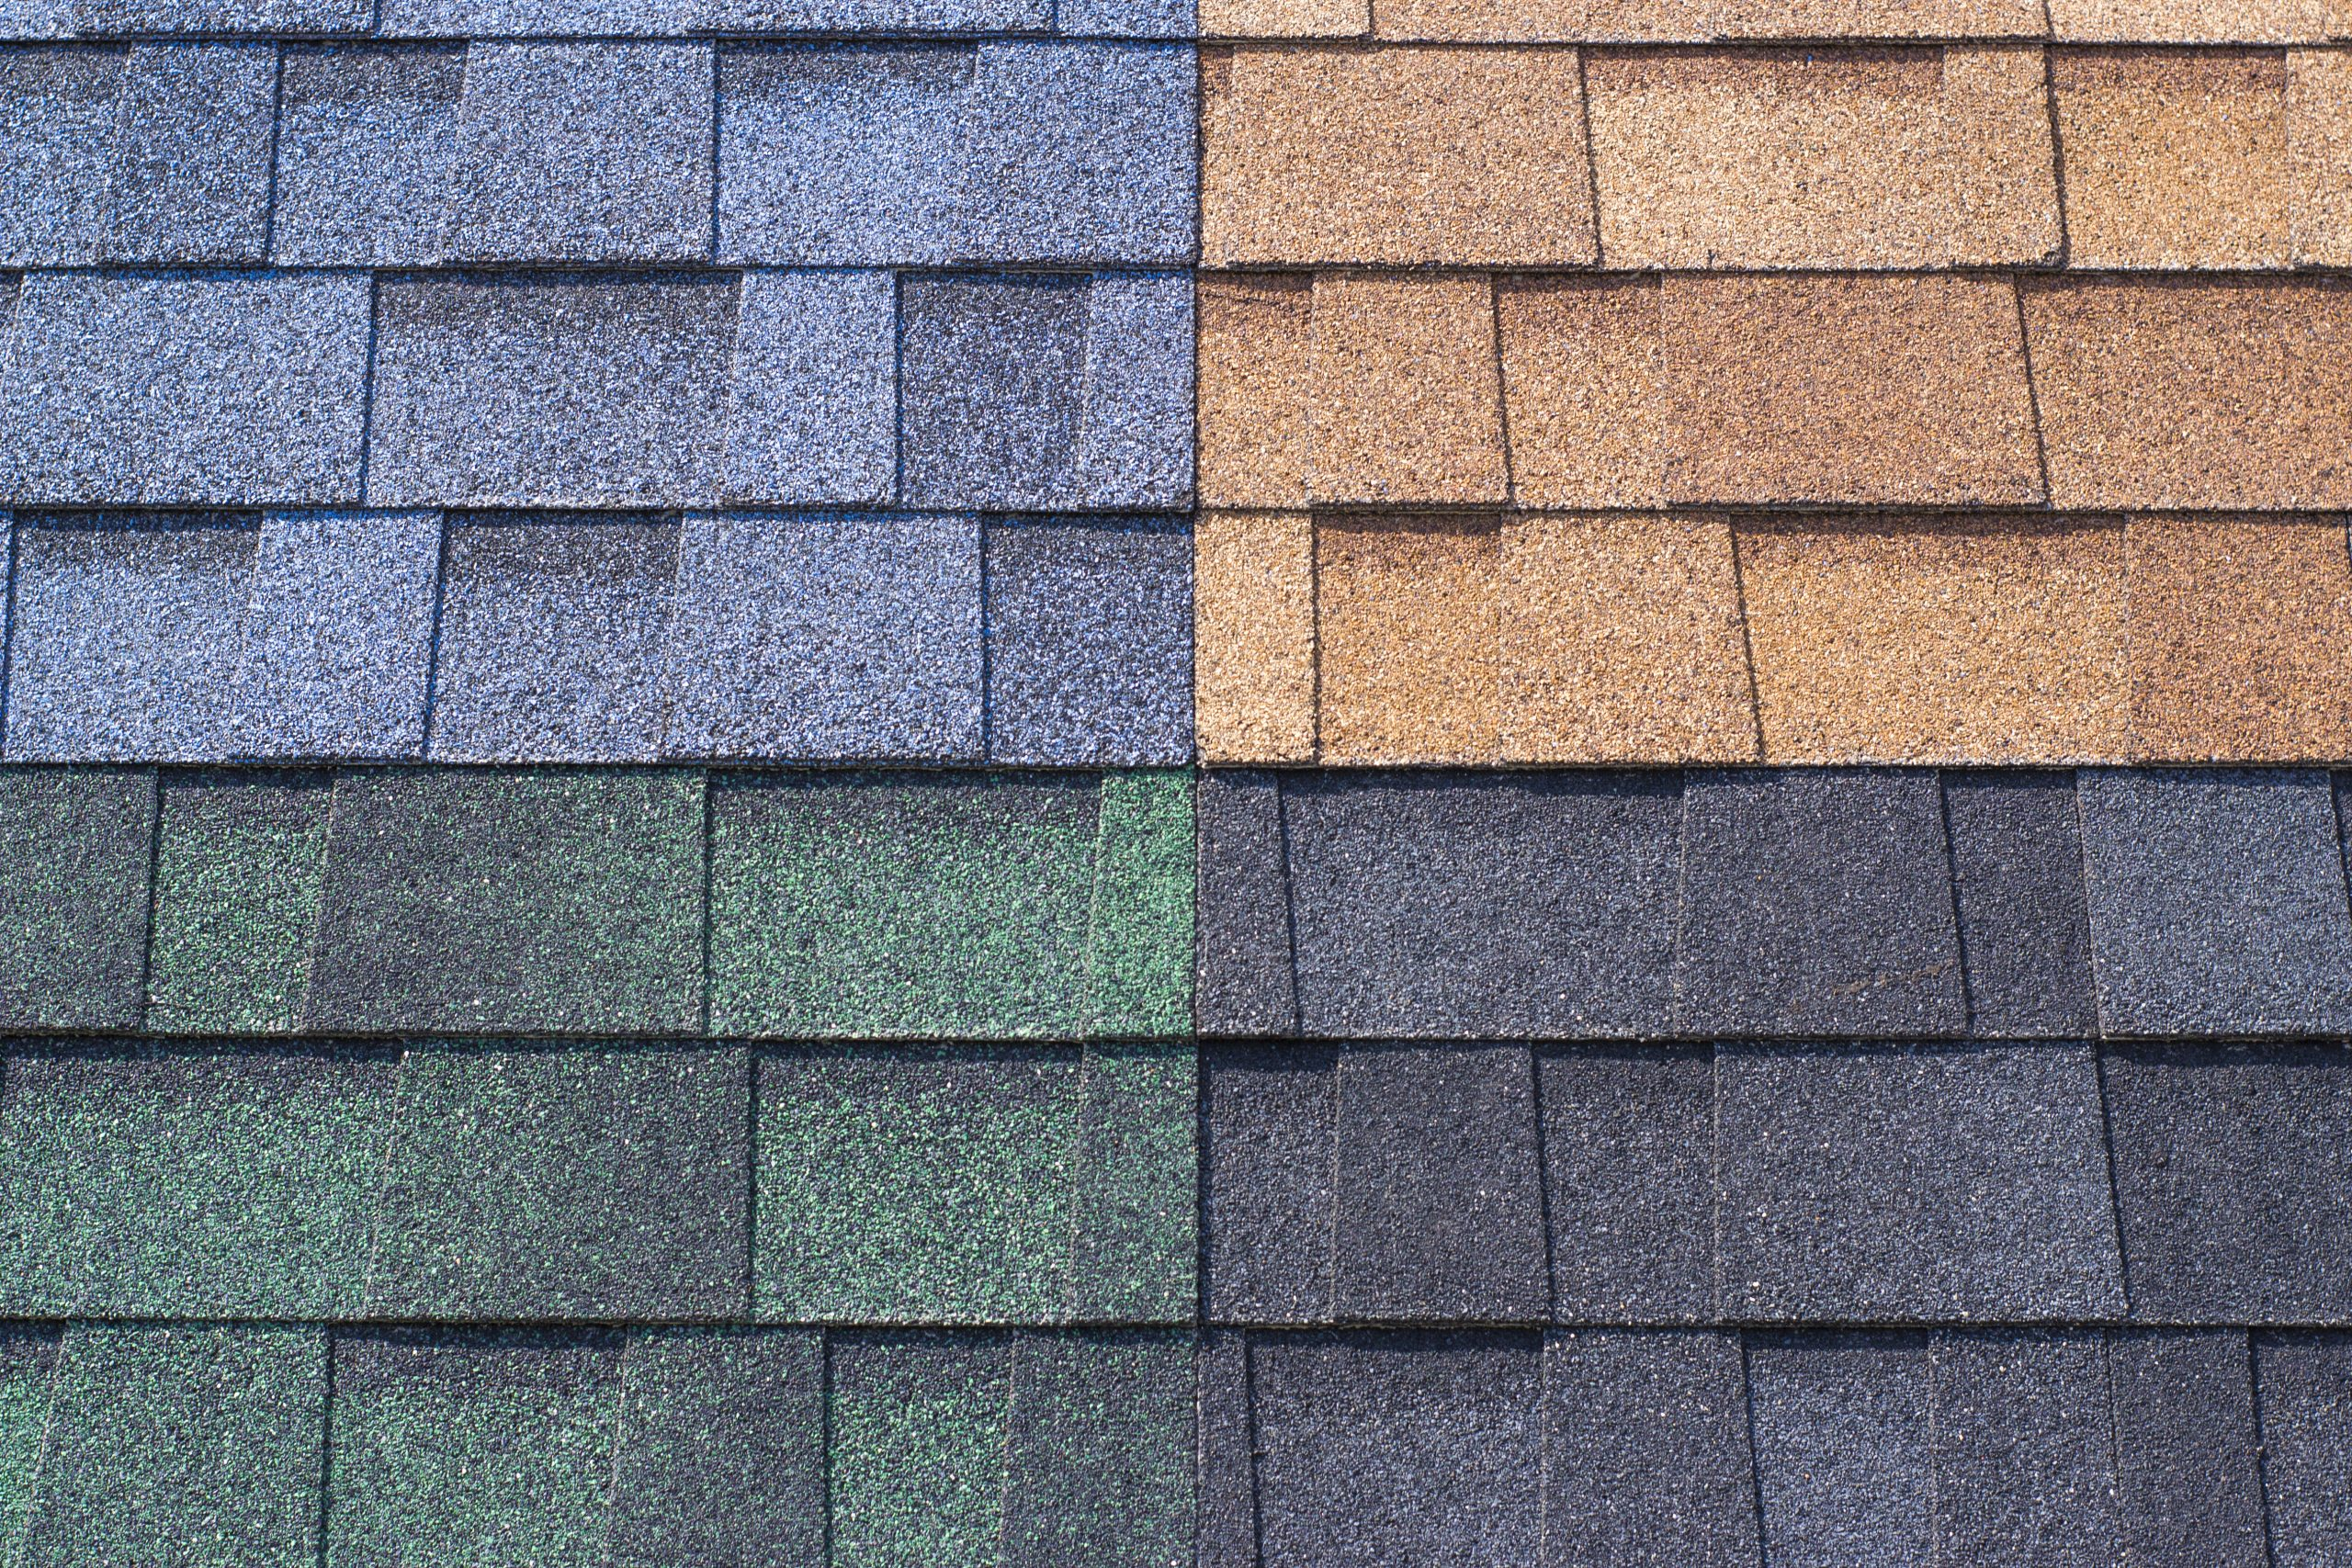 multi-colored bitumen shingles, a sample of the product advertising